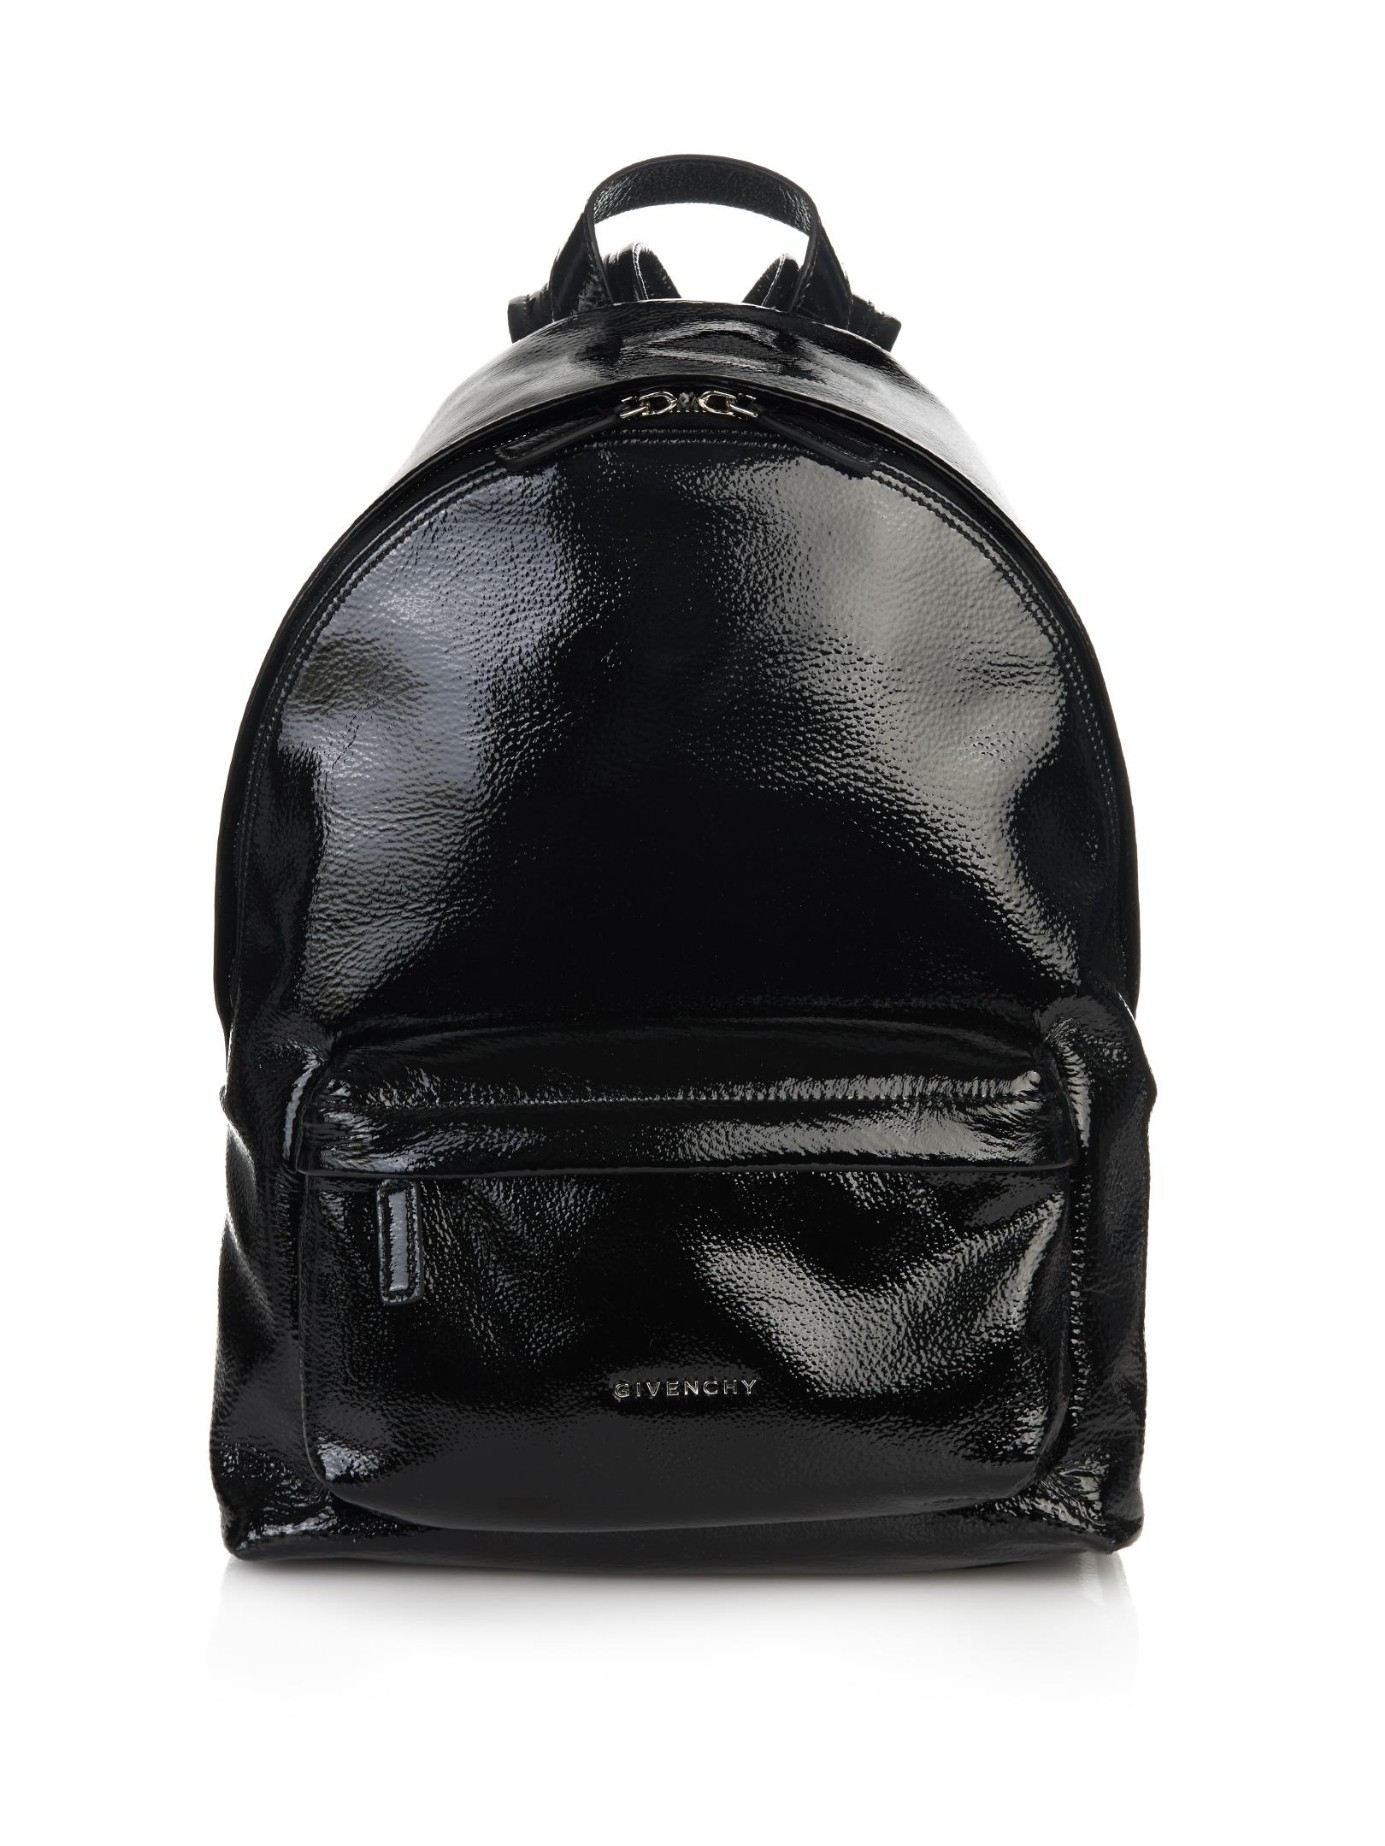 Shop leather black patent bag at Neiman Marcus, where you will find free shipping on the latest in fashion from top designers. More Details Versace Zaino Men's Quilted-Nylon Backpack Details Versace backpack in quilted patent faux-leather (acrylic/nylon). Shiny silvertone hardware. Rolled top handle. Adjustable shoulder straps. One front.